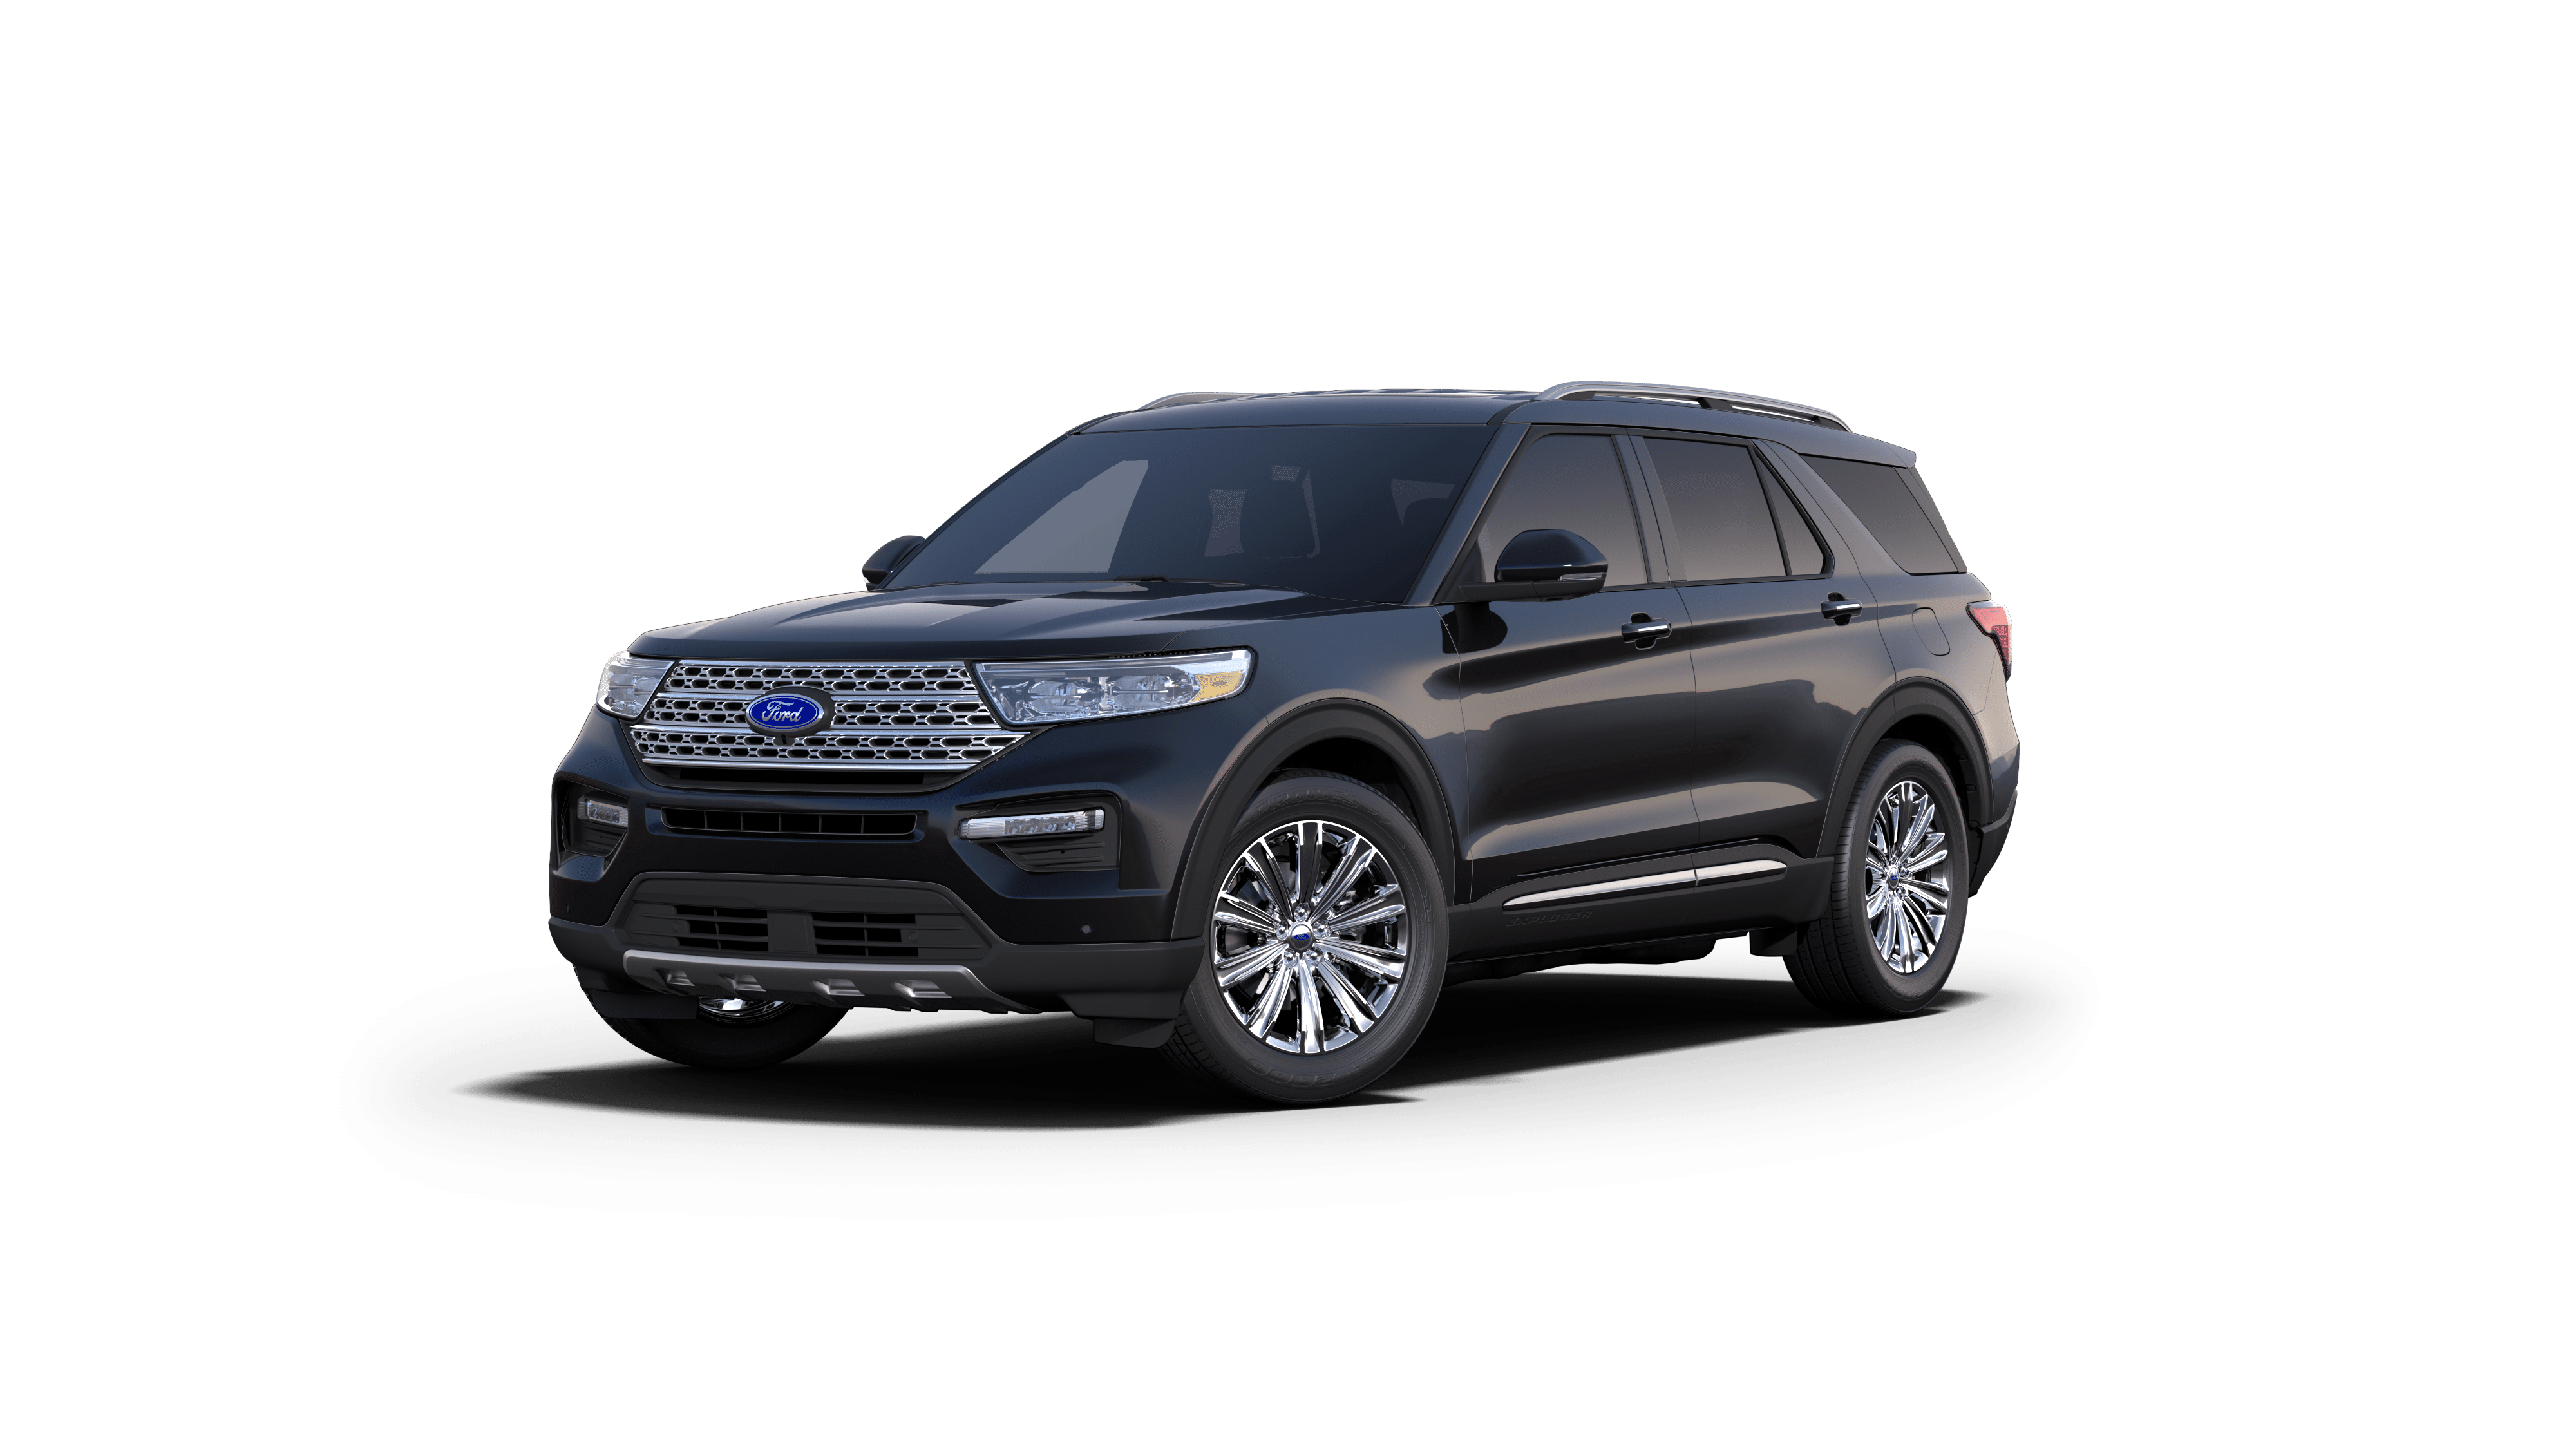 37 Great 2020 Ford Explorer Build And Price Concept by 2020 Ford Explorer Build And Price